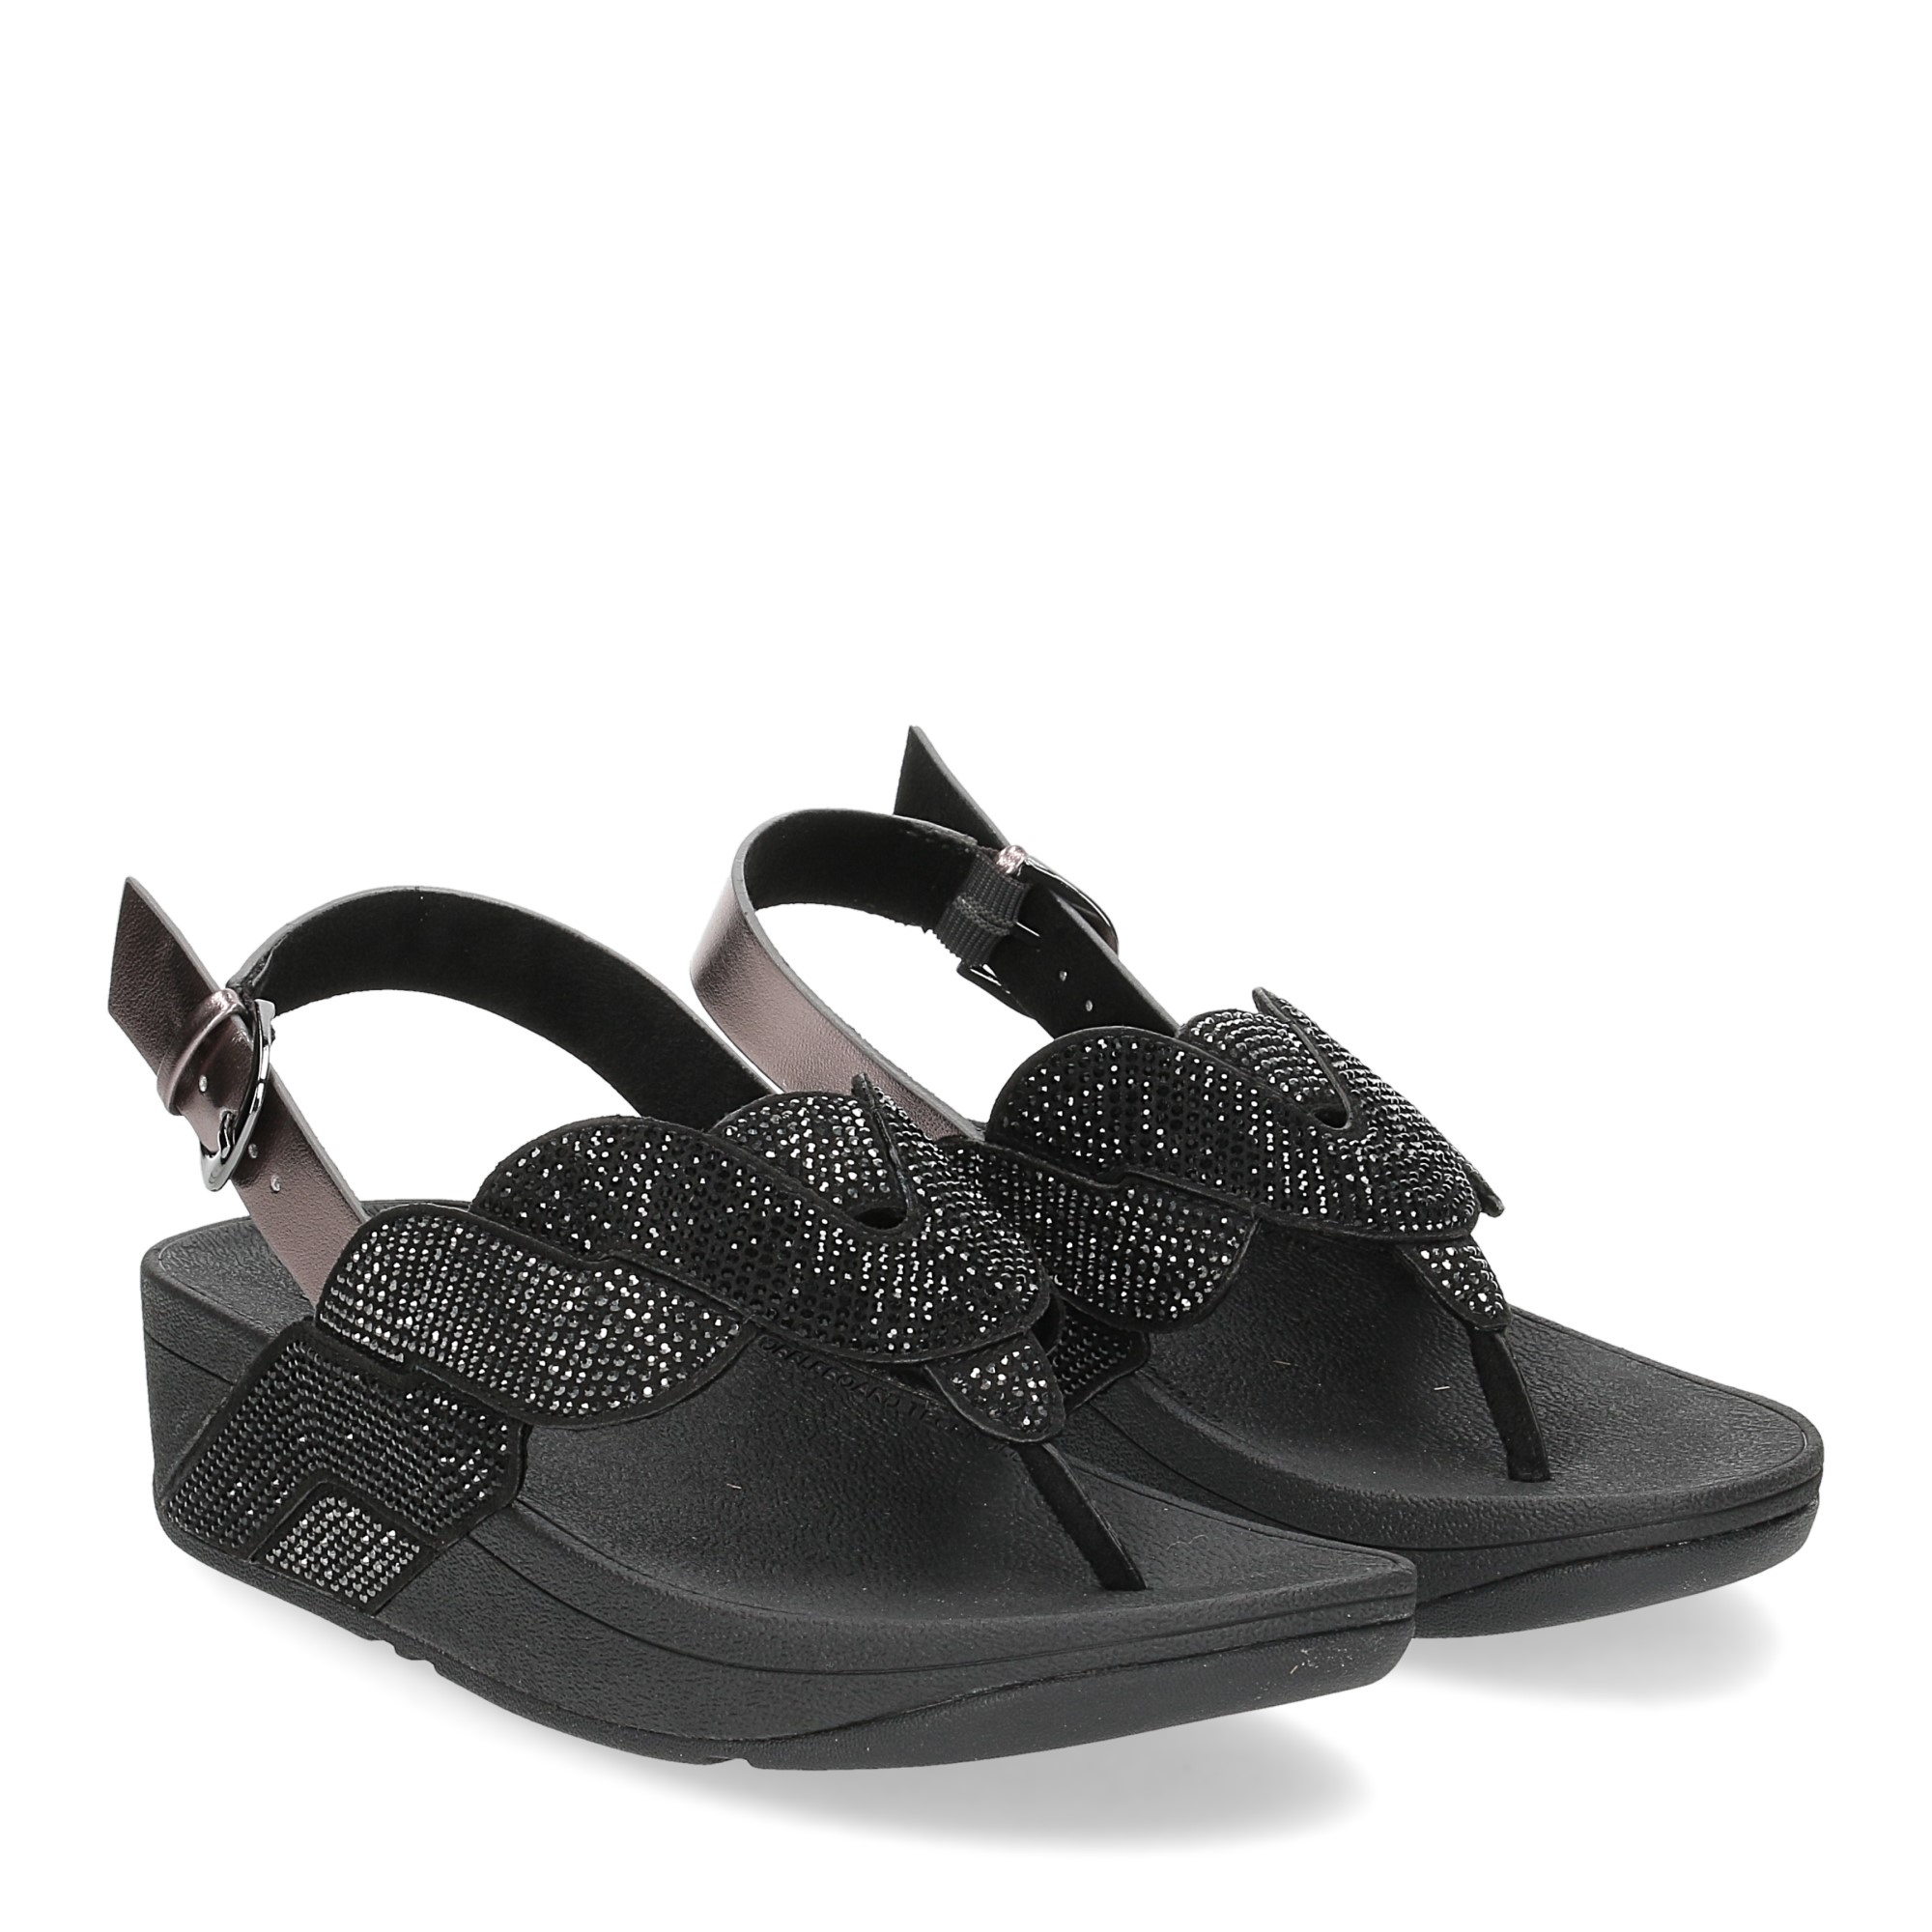 Fitflop Paisley Rope back strap sandals black